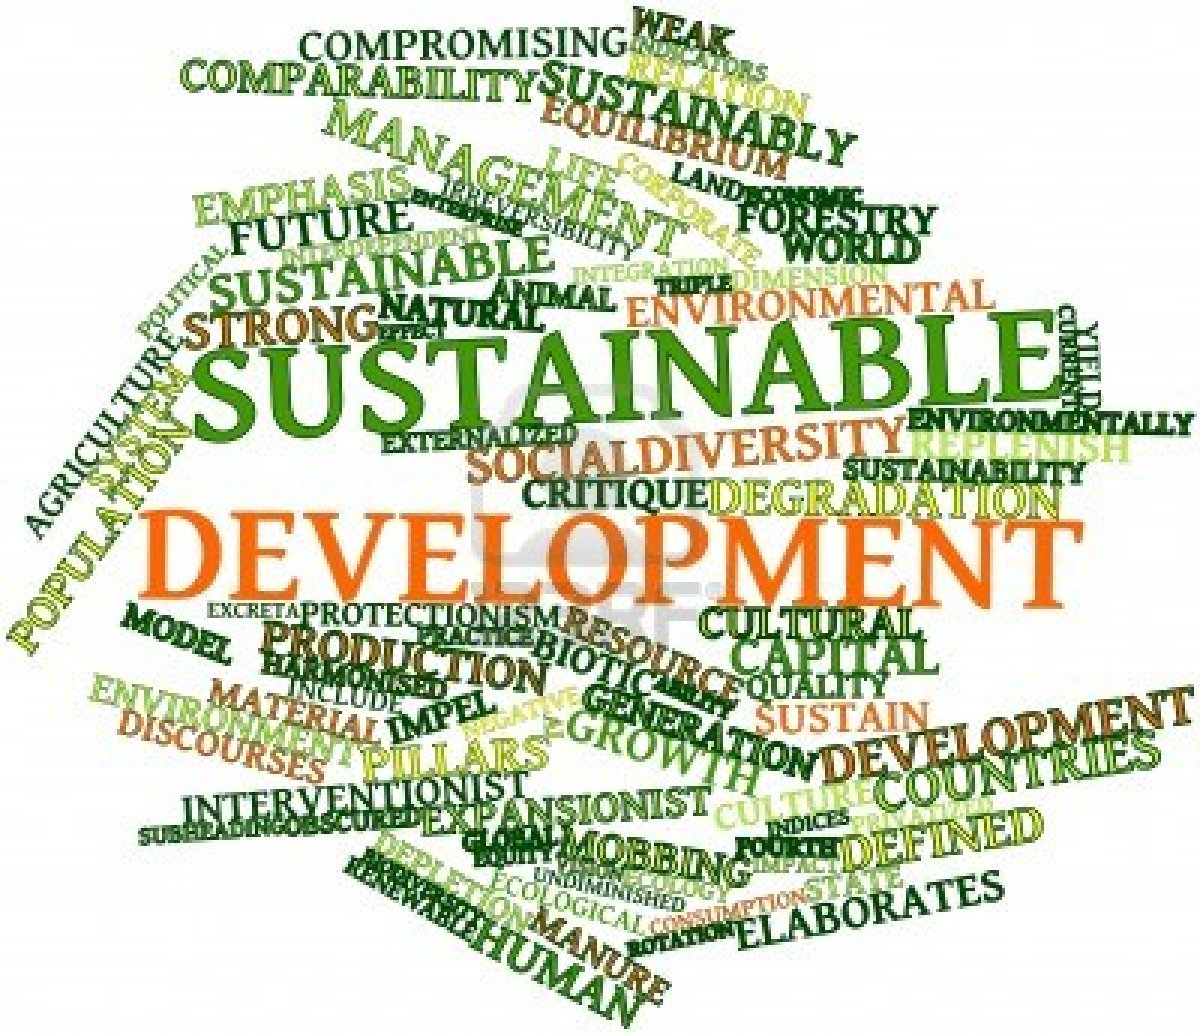 development of sustainable technologies and their adoption There's no alternative to sustainable development even so, many companies are convinced that the more environment-friendly they become, the more the effort will erode their competitiveness.